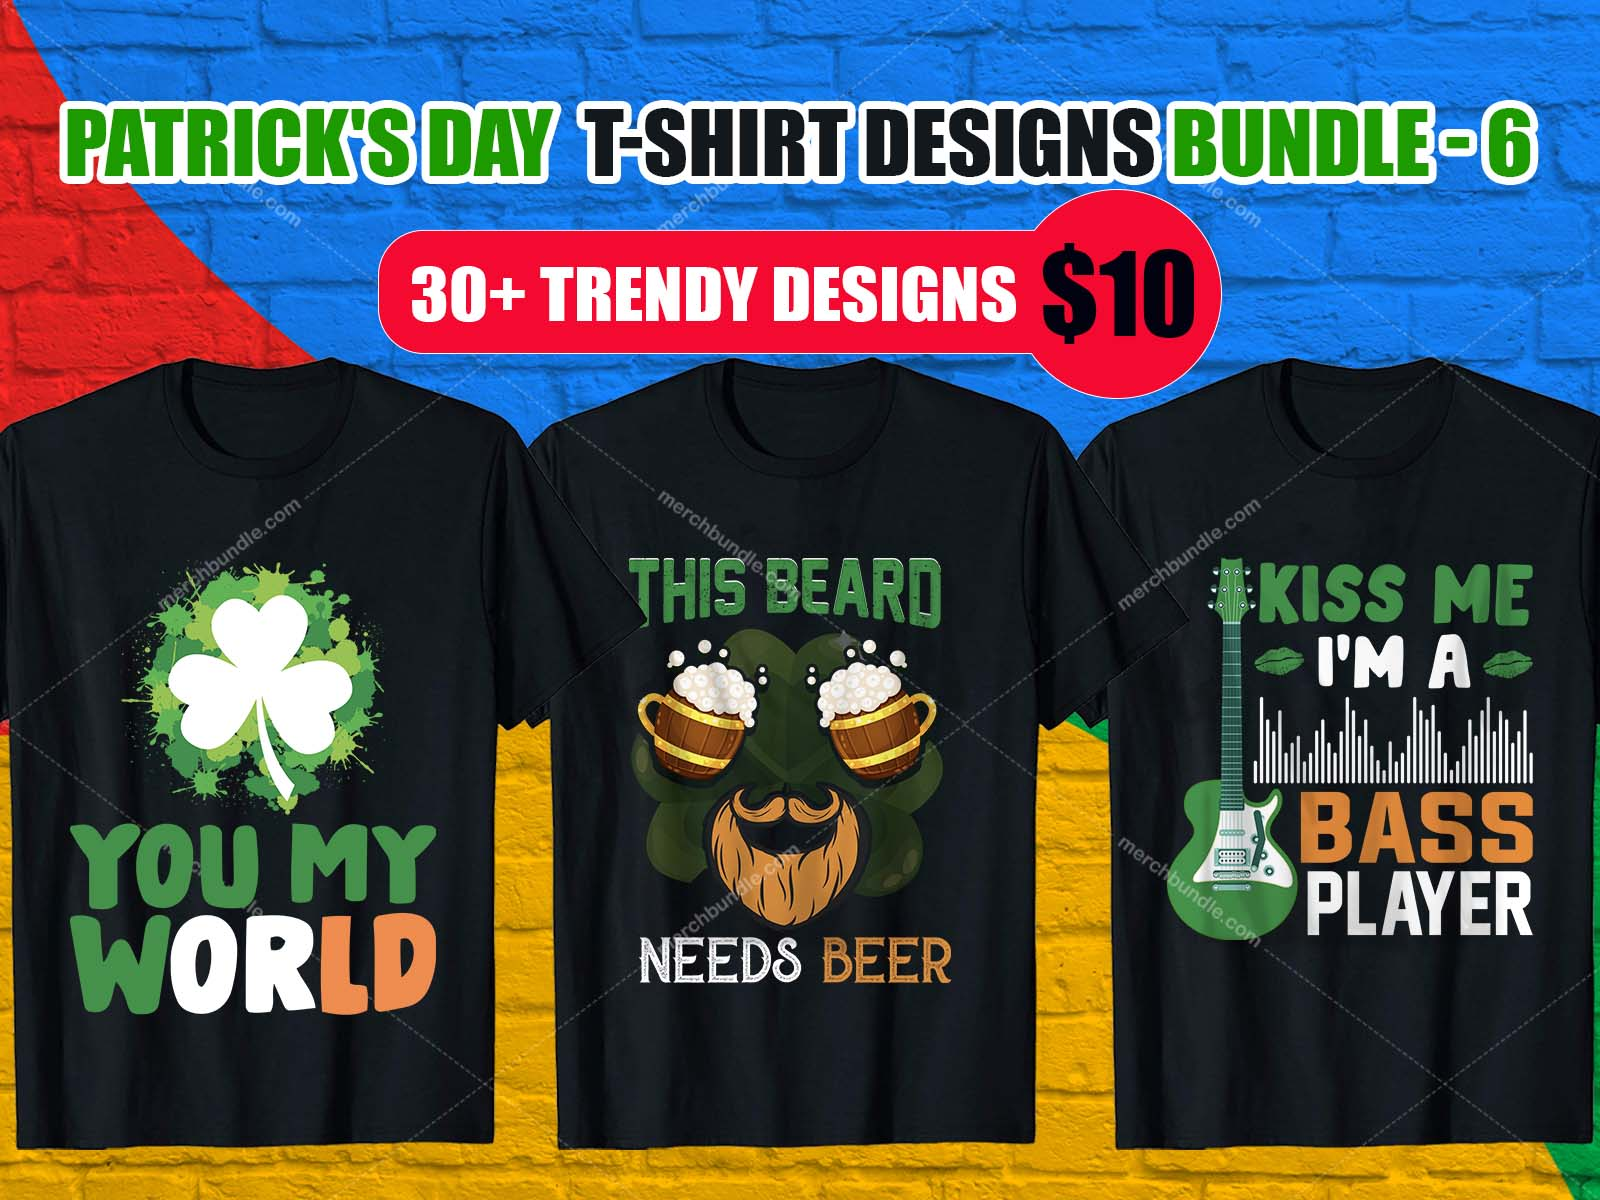 Saint Patrick's Day shirt